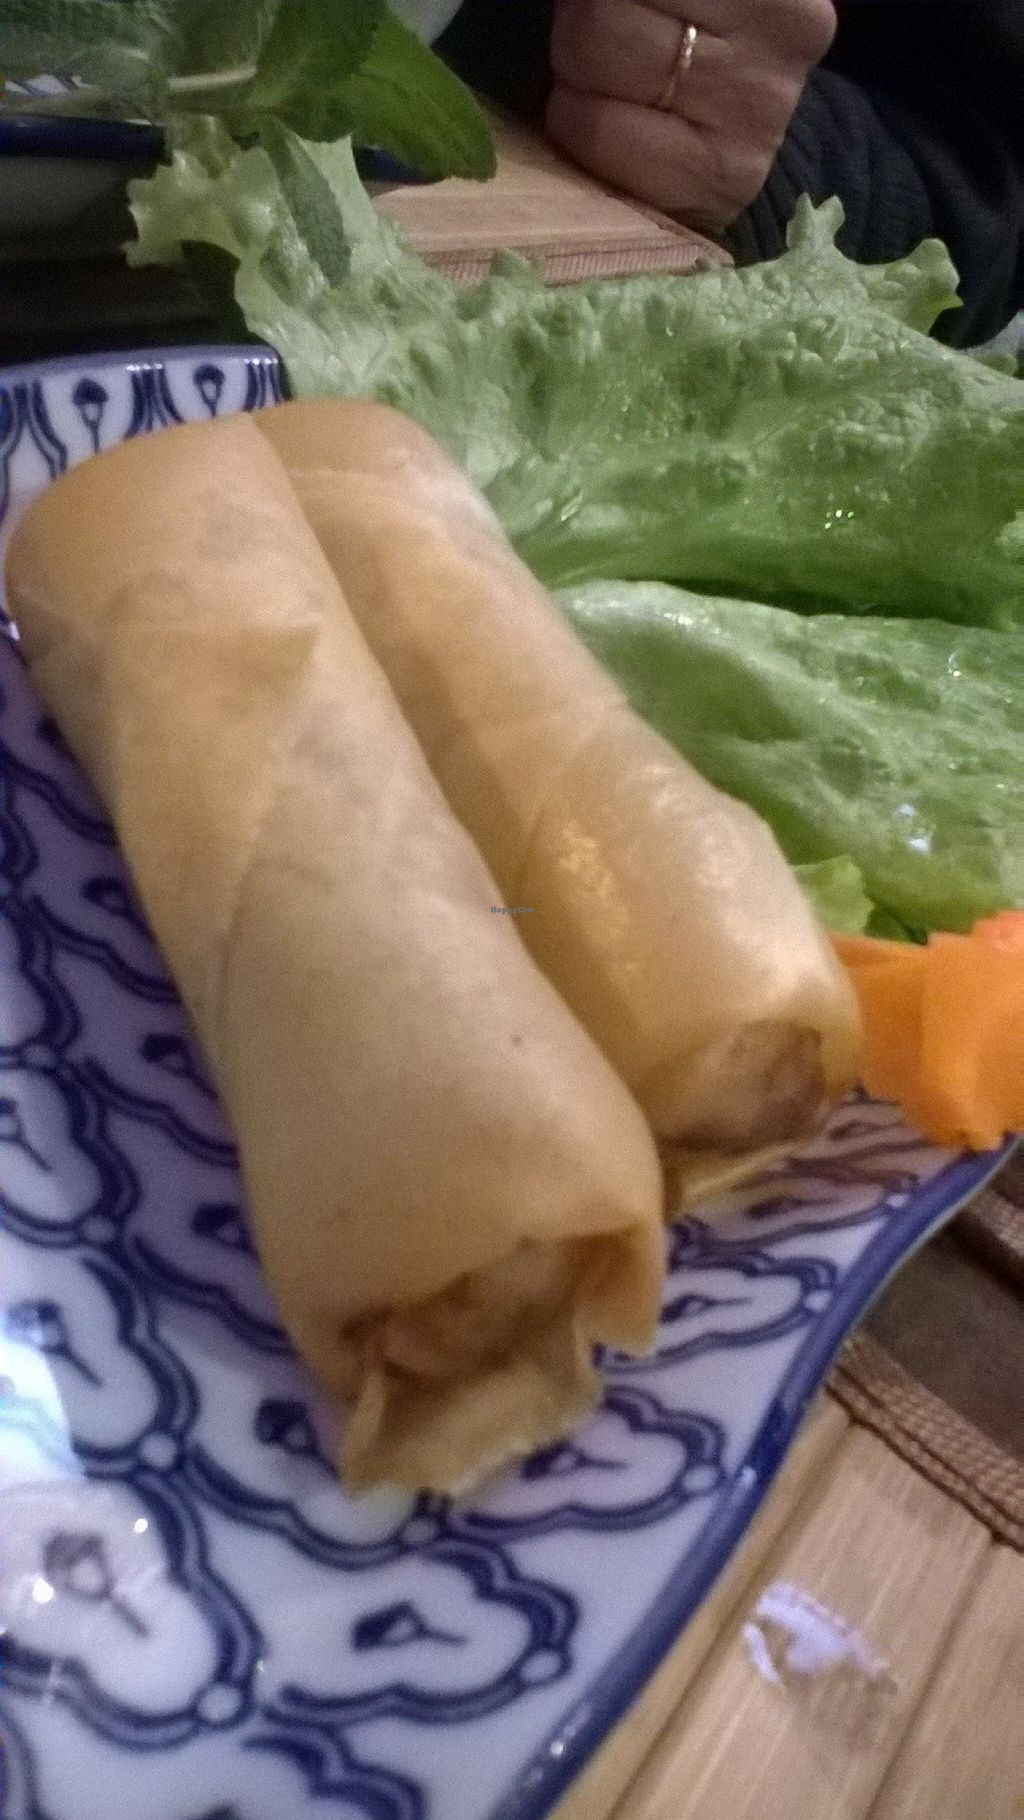 "Photo of Chian Rai Mai  by <a href=""/members/profile/Sylvane"">Sylvane</a> <br/>Vegetables rolls <br/> March 4, 2016  - <a href='/contact/abuse/image/70432/138702'>Report</a>"